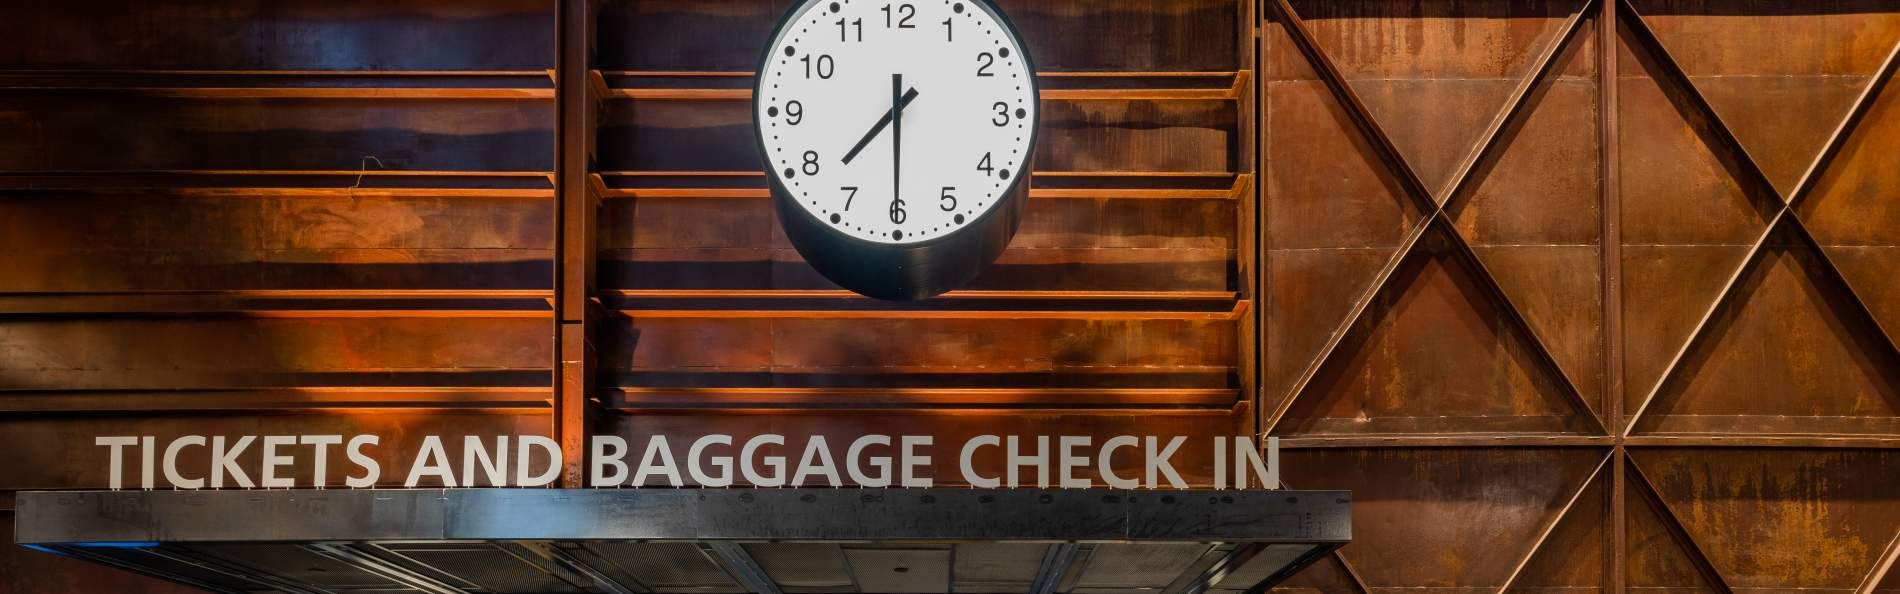 Sign for baggage and ticket check-in at the new Raleigh Union Station.